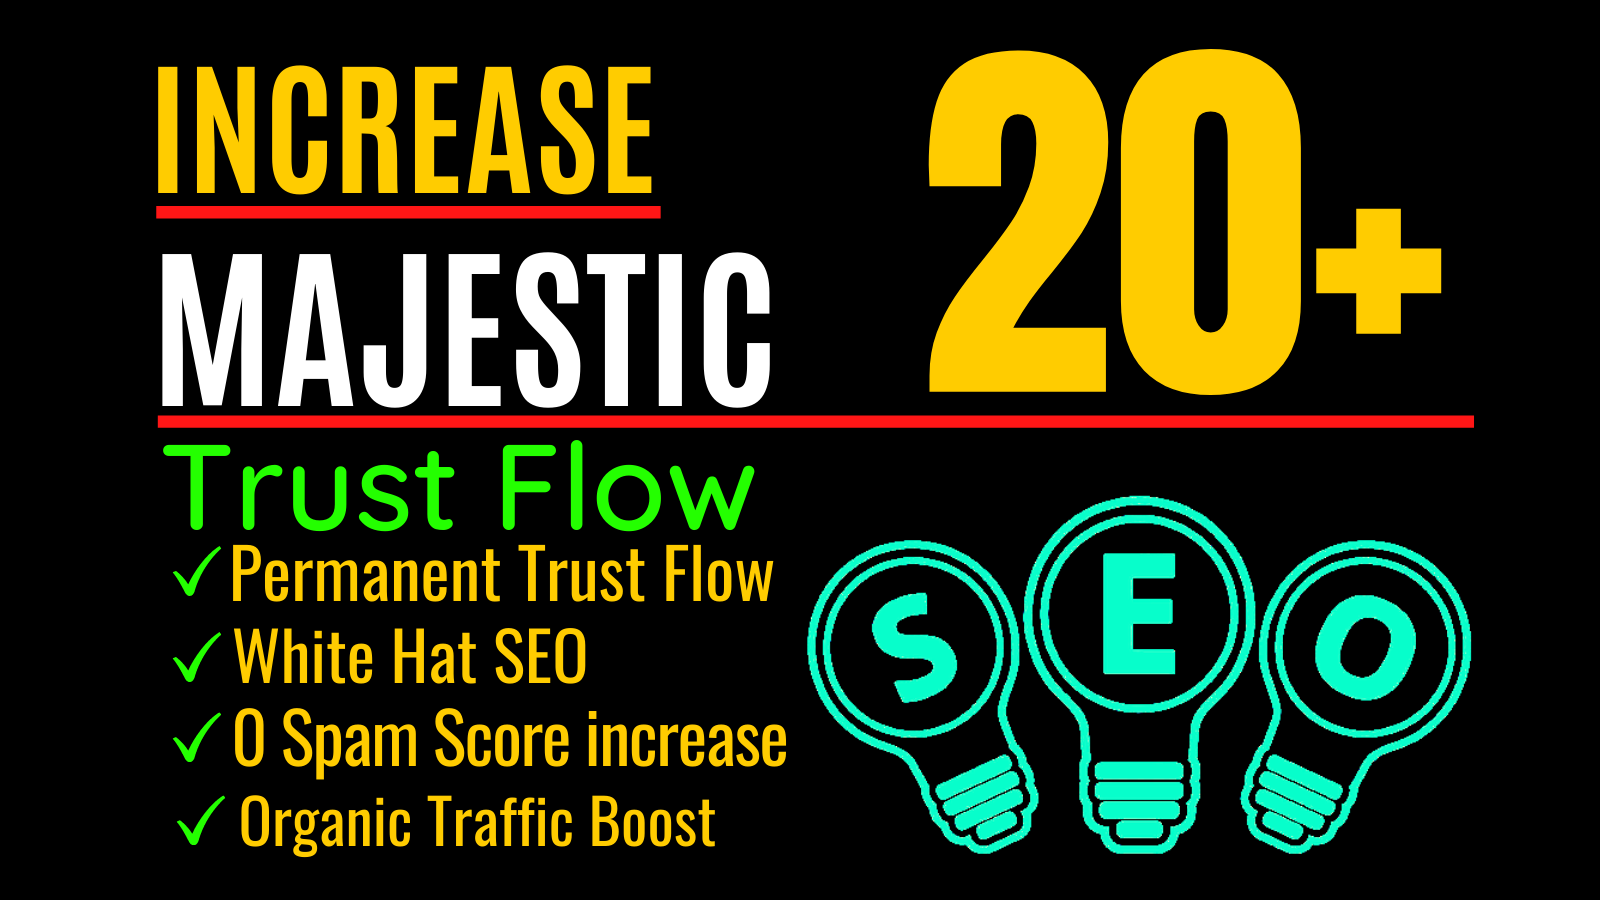 I will increase your majestic trust flow up to 20 plus